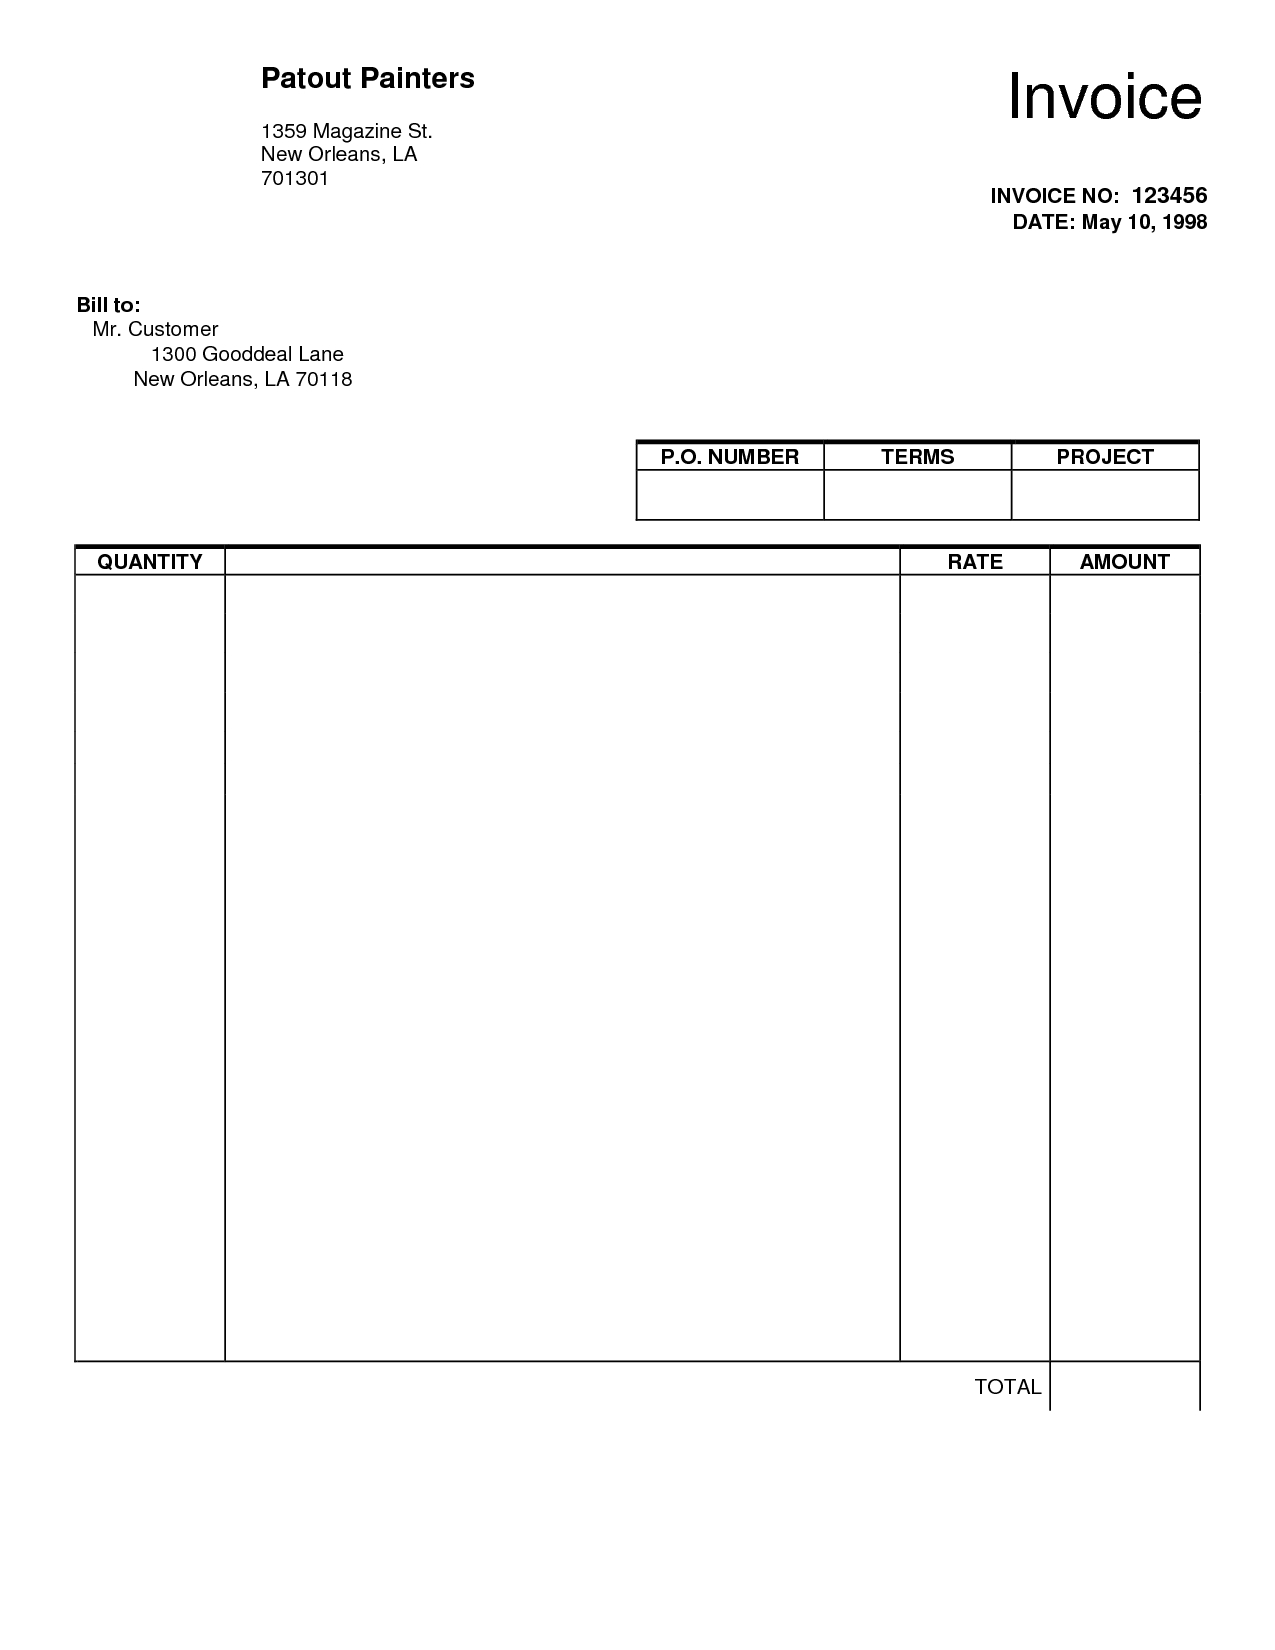 blank invoice pdf free template word loveworldusaco::Receipt Template Blank Word PDF